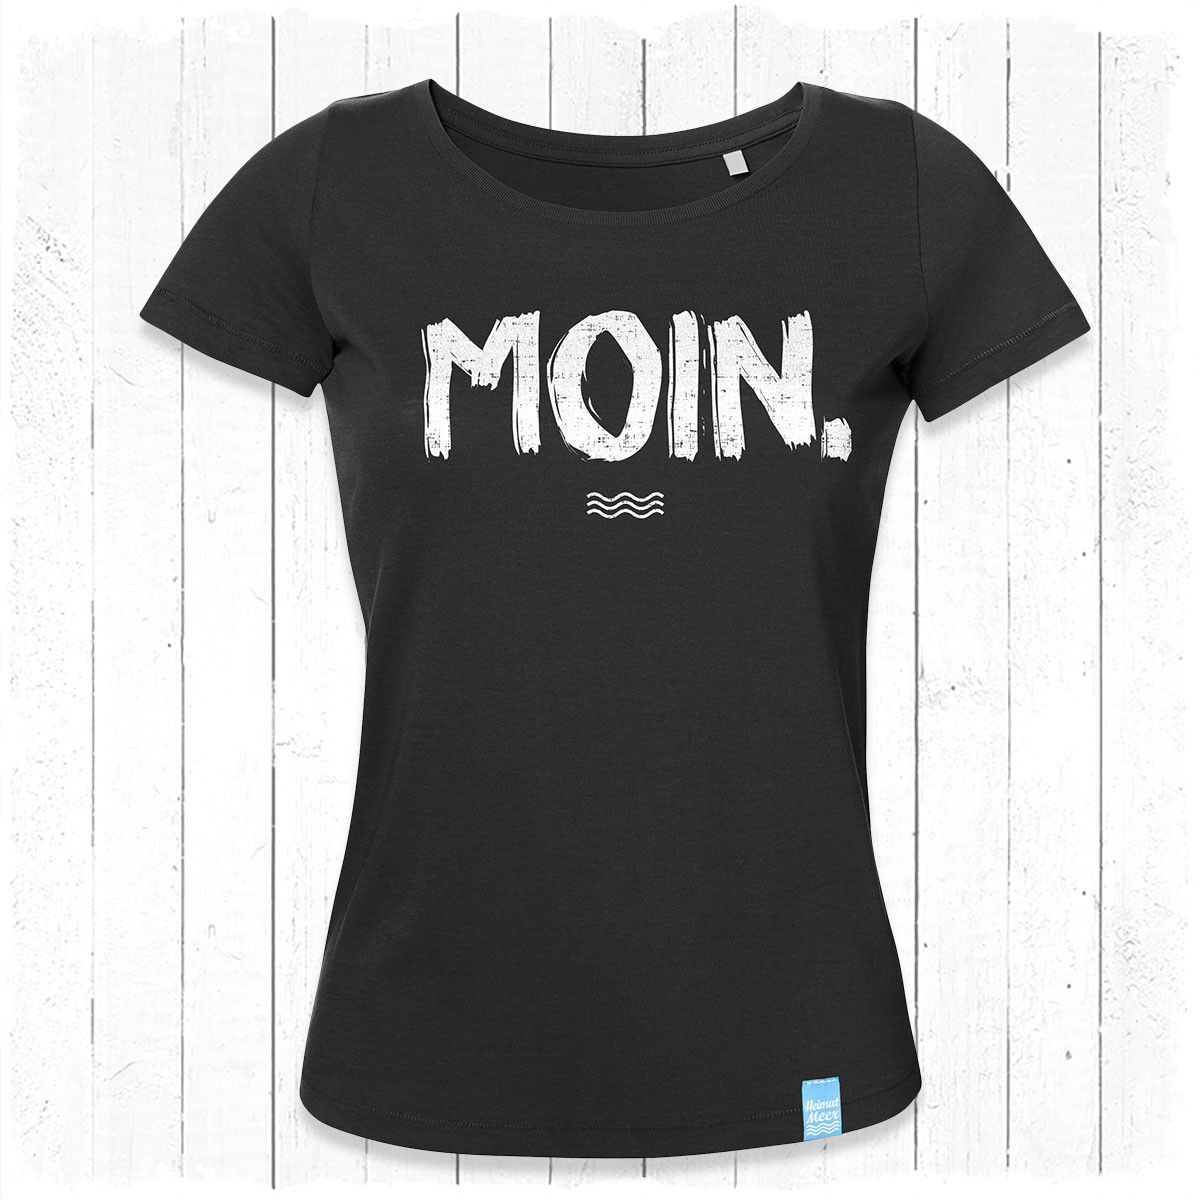 huge selection of 63ce5 ce2f5 Anker Shirts, gestreifte T-Shirts, maritime Oberteile & Mee ...